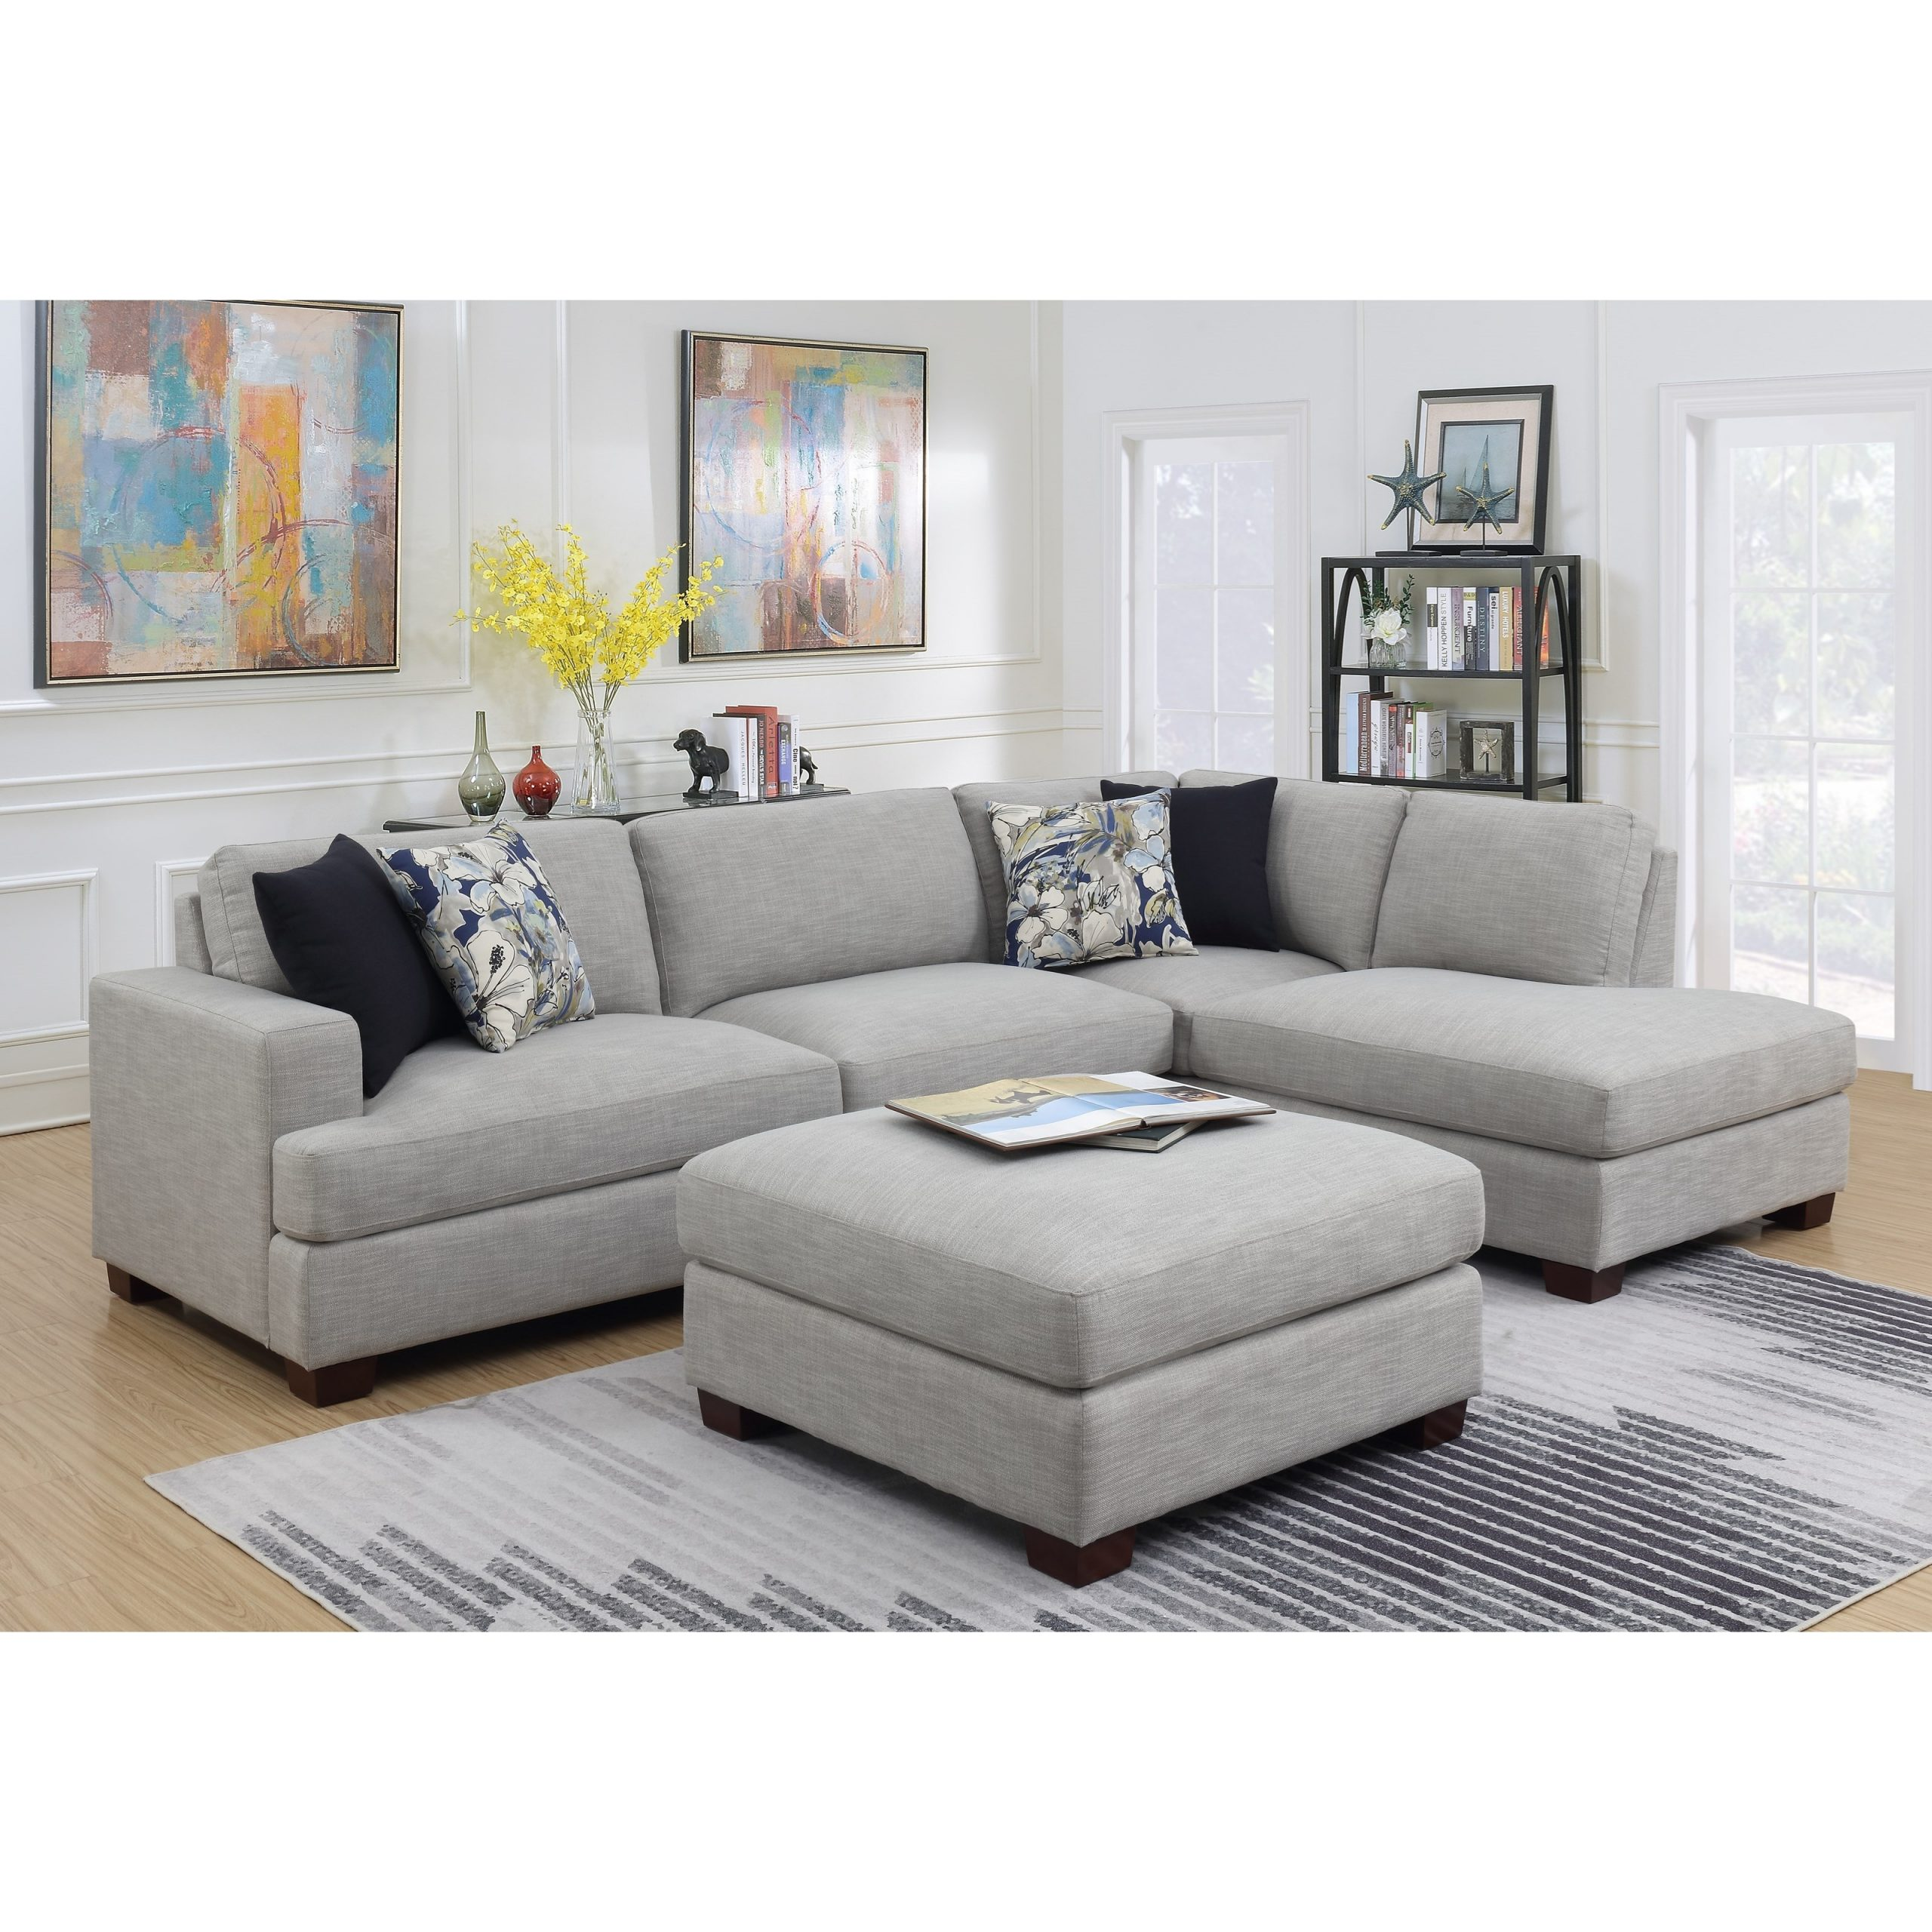 Emerald Vernon Contemporary 2 Piece Sectional Sofa With Throughout 2Pc Connel Modern Chaise Sectional Sofas Black (View 1 of 15)